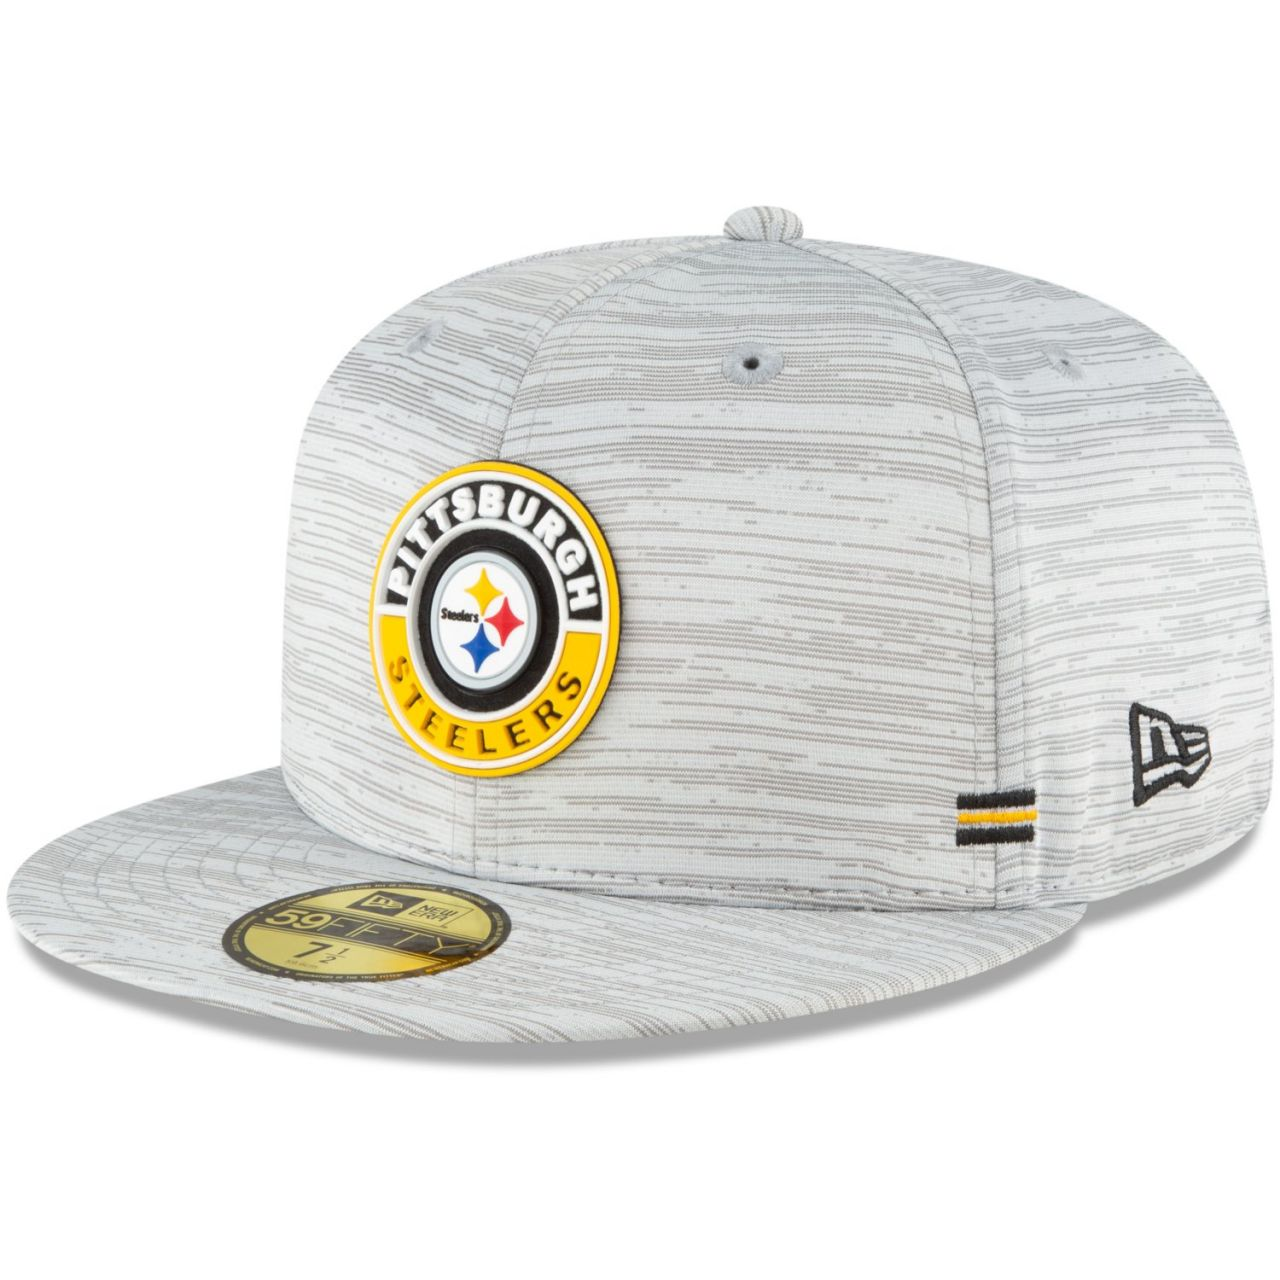 amfoo - New Era 59Fifty Fitted Cap SIDELINE 2020 Pittsburgh Steelers